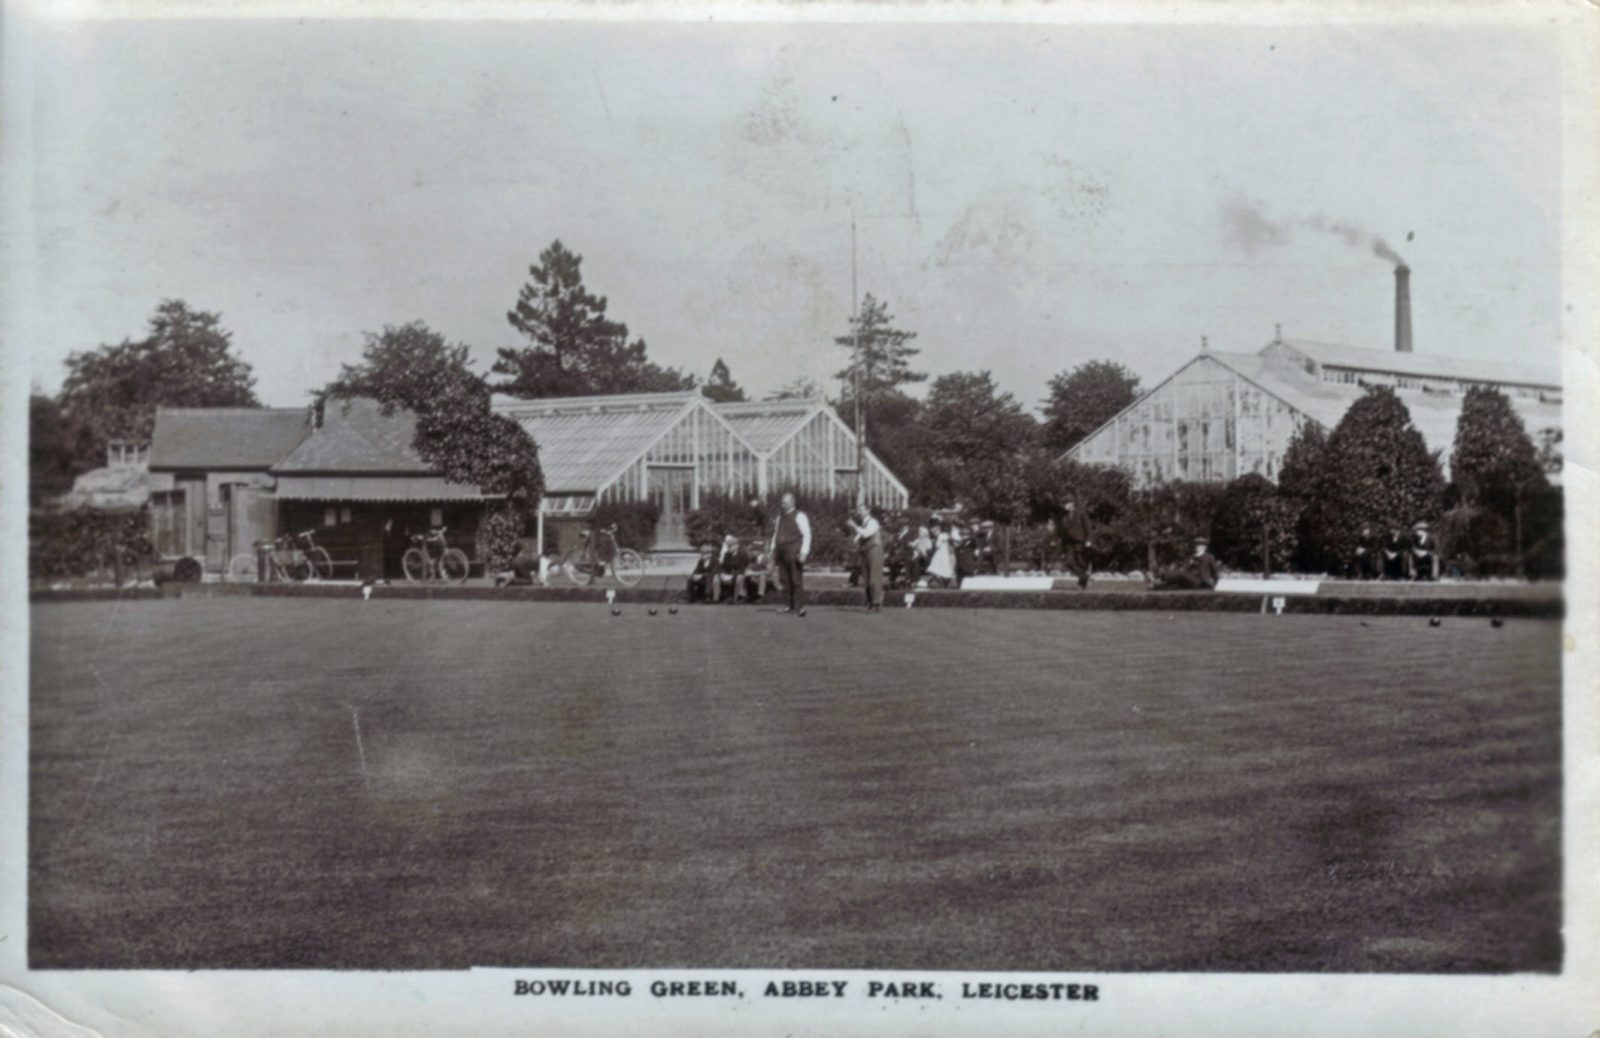 Abbey Park, Leicester. 1921-1940: Bowling green with green houses in the background (File:1431)